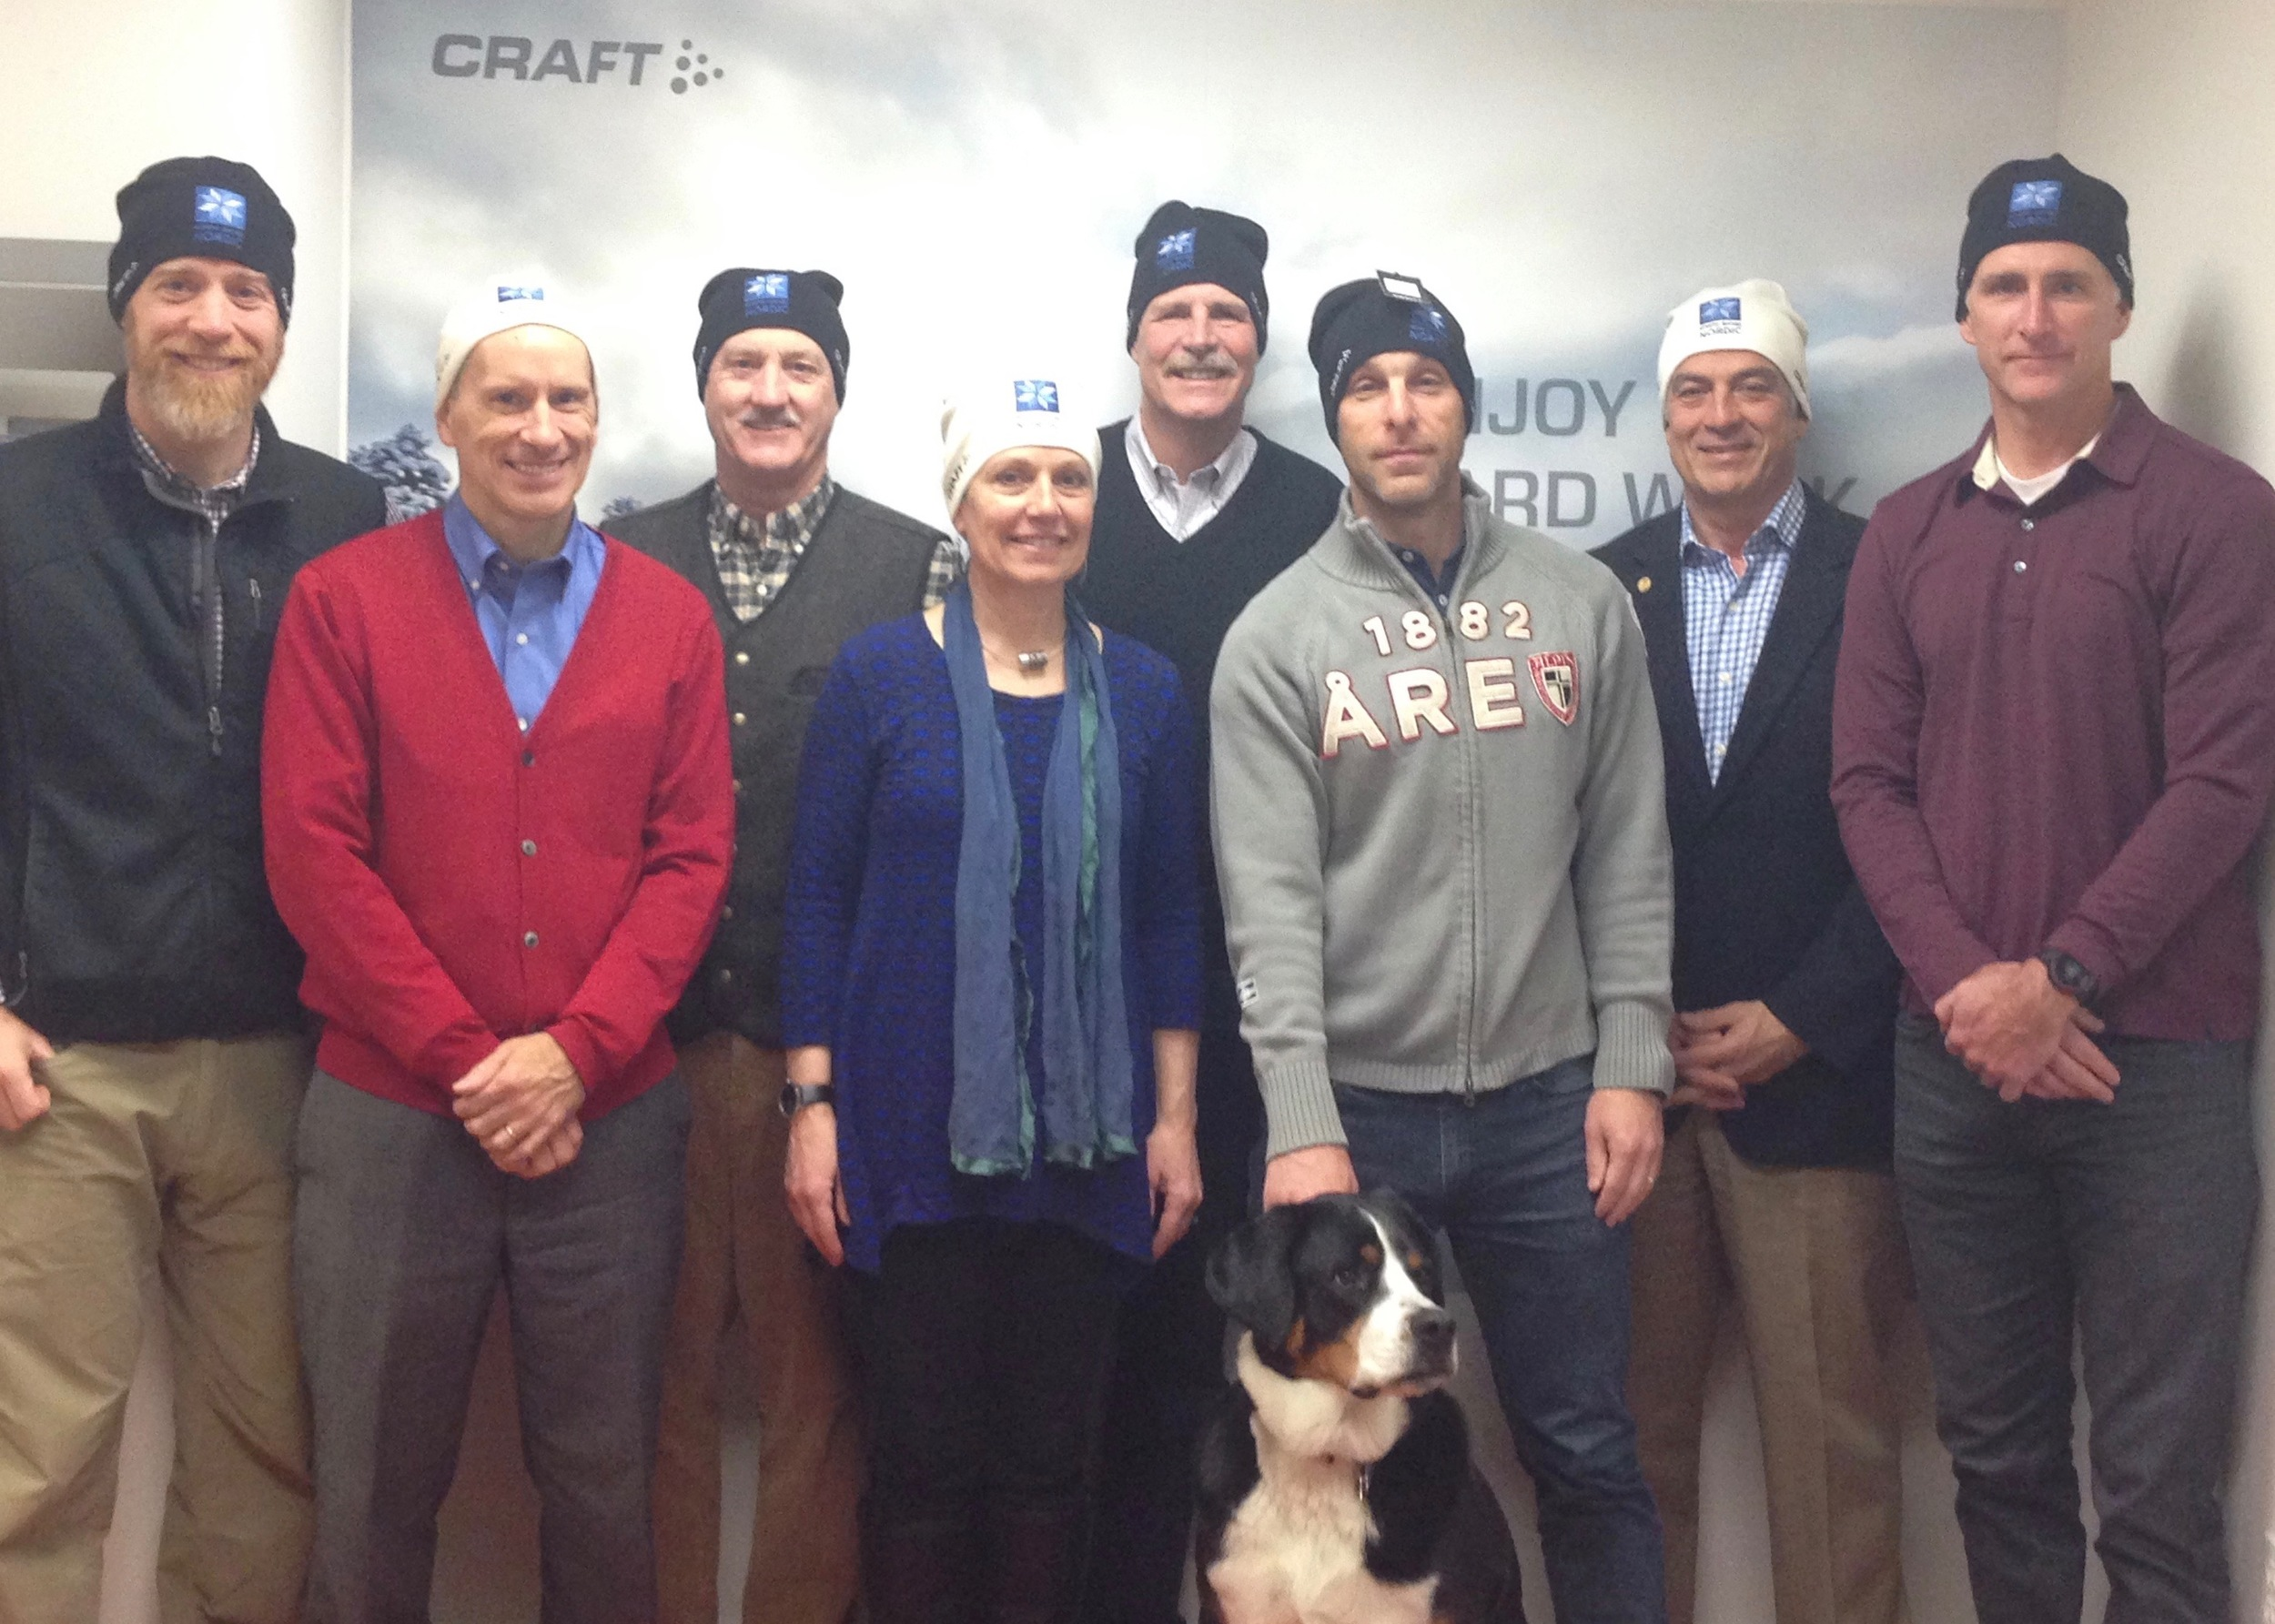 Check out our Board of Directors (plus a couple special guests) in their 2015 NSNA/Craft hats!